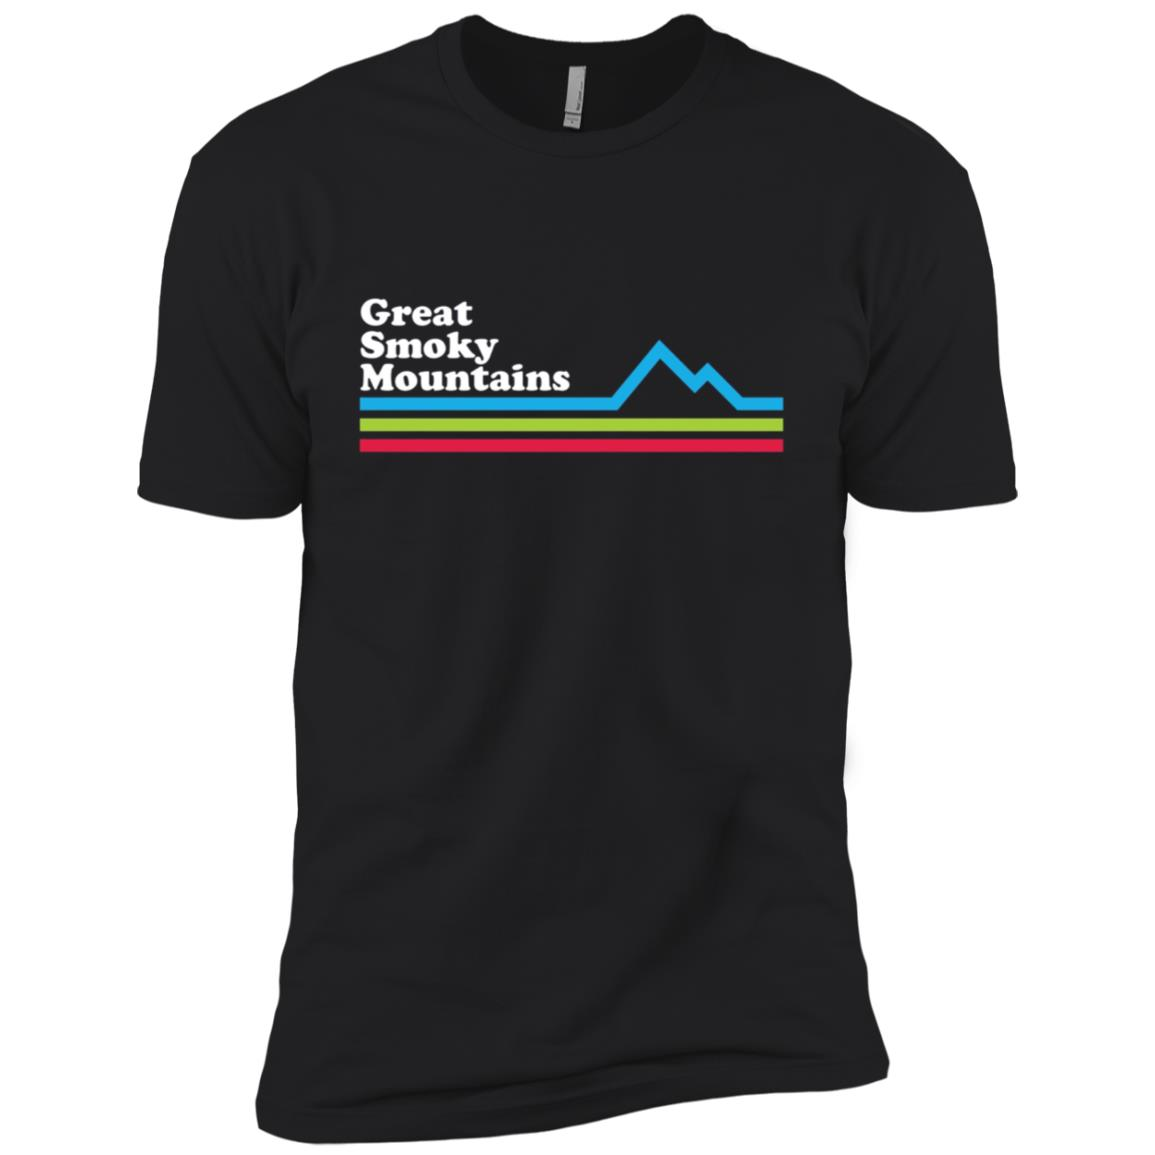 Great Smoky Mountains National Park Men Short Sleeve T-Shirt